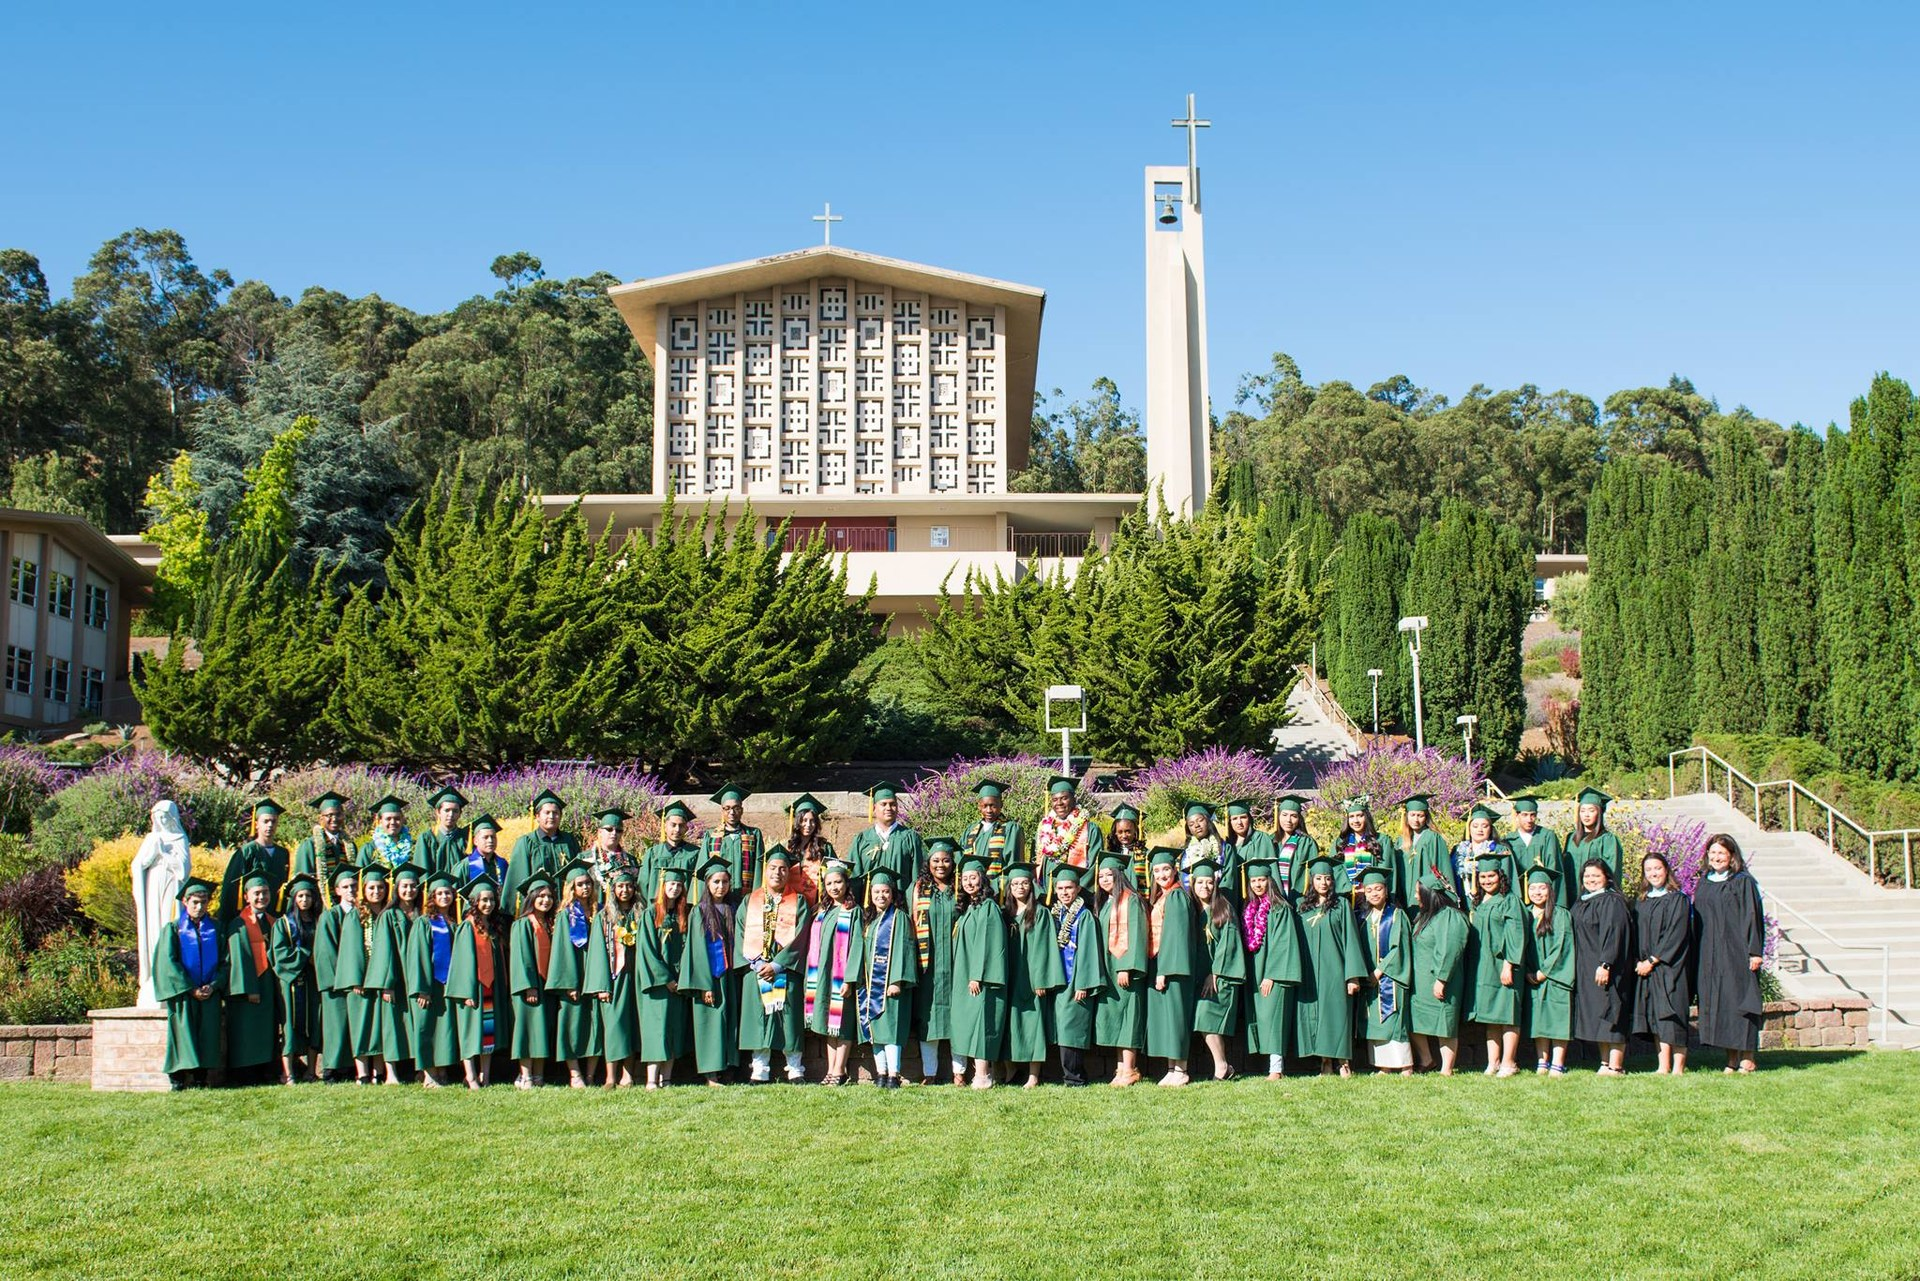 Graduating students in green caps and gowns